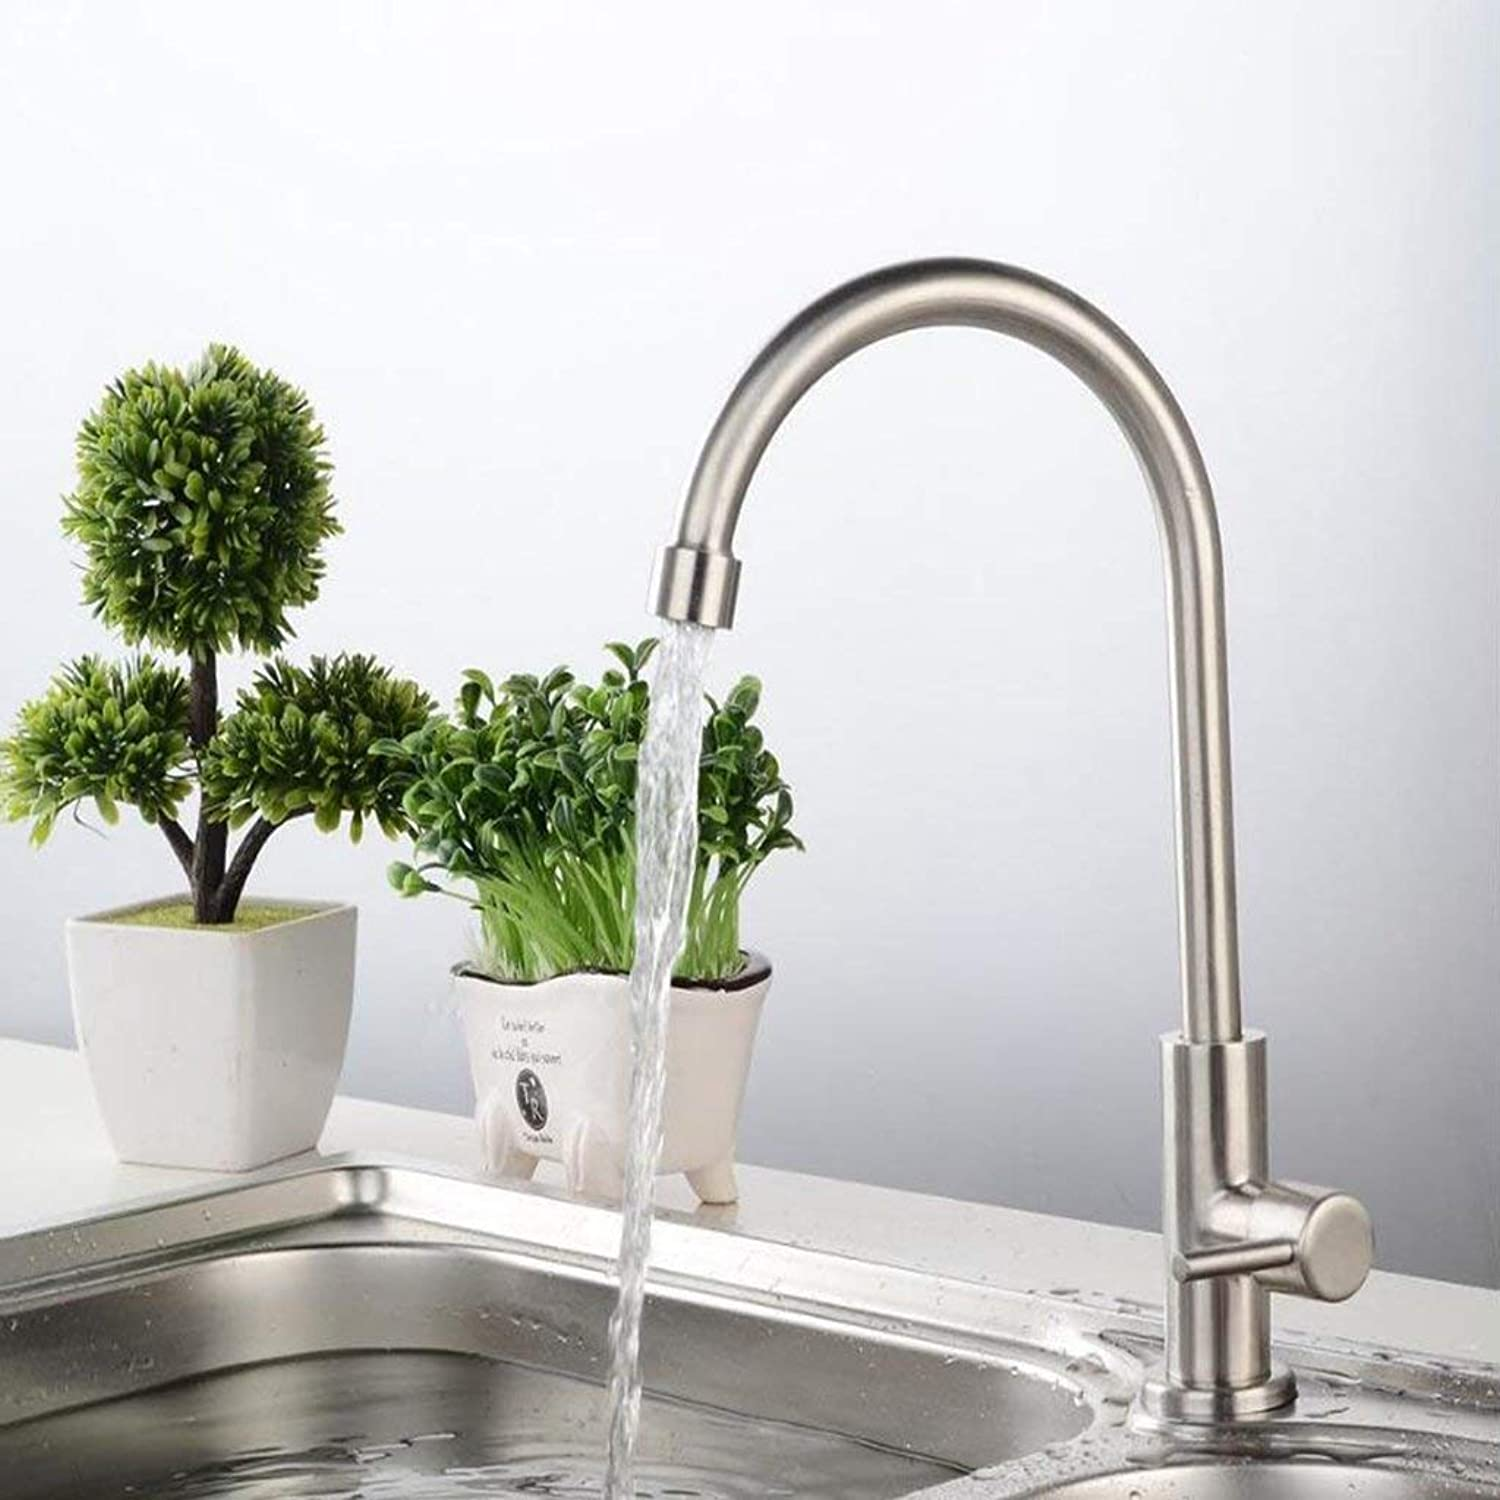 SEBAS HOME 304 stainless steel lead-free single cold kitchen faucet redary sink sink mixer